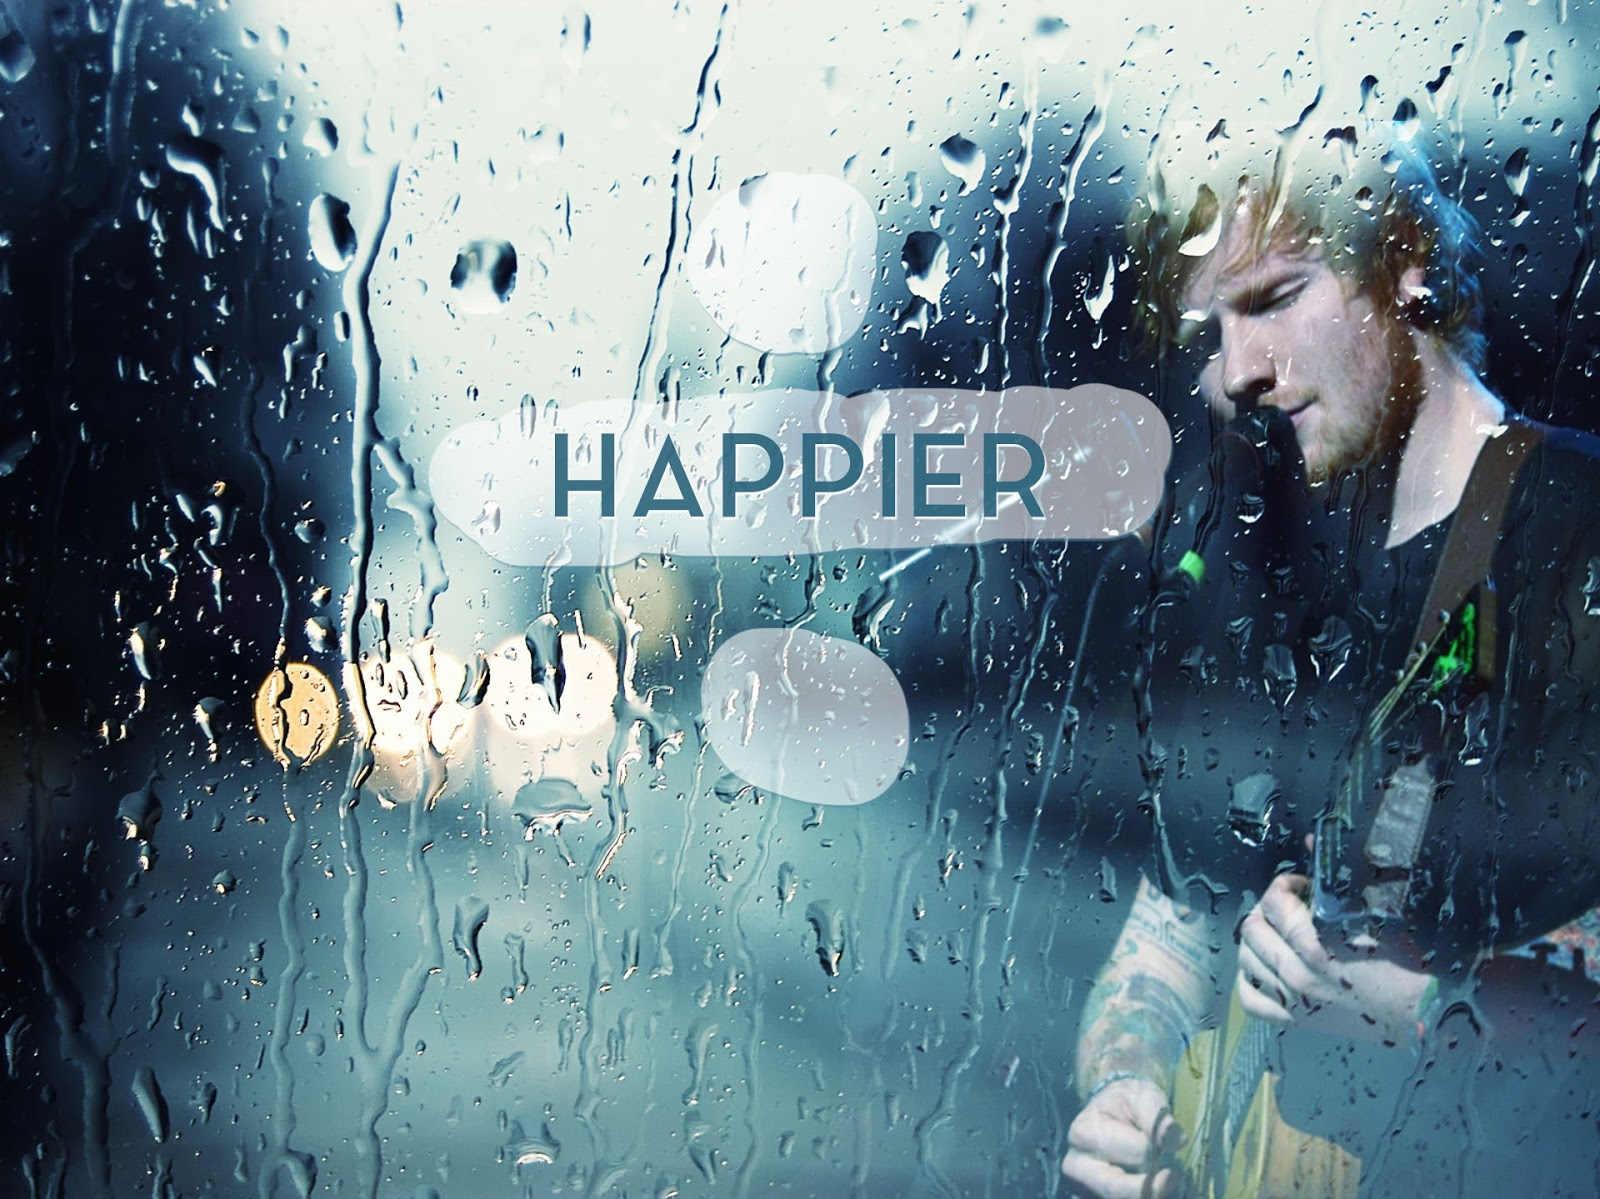 Happier Ed Sheeran